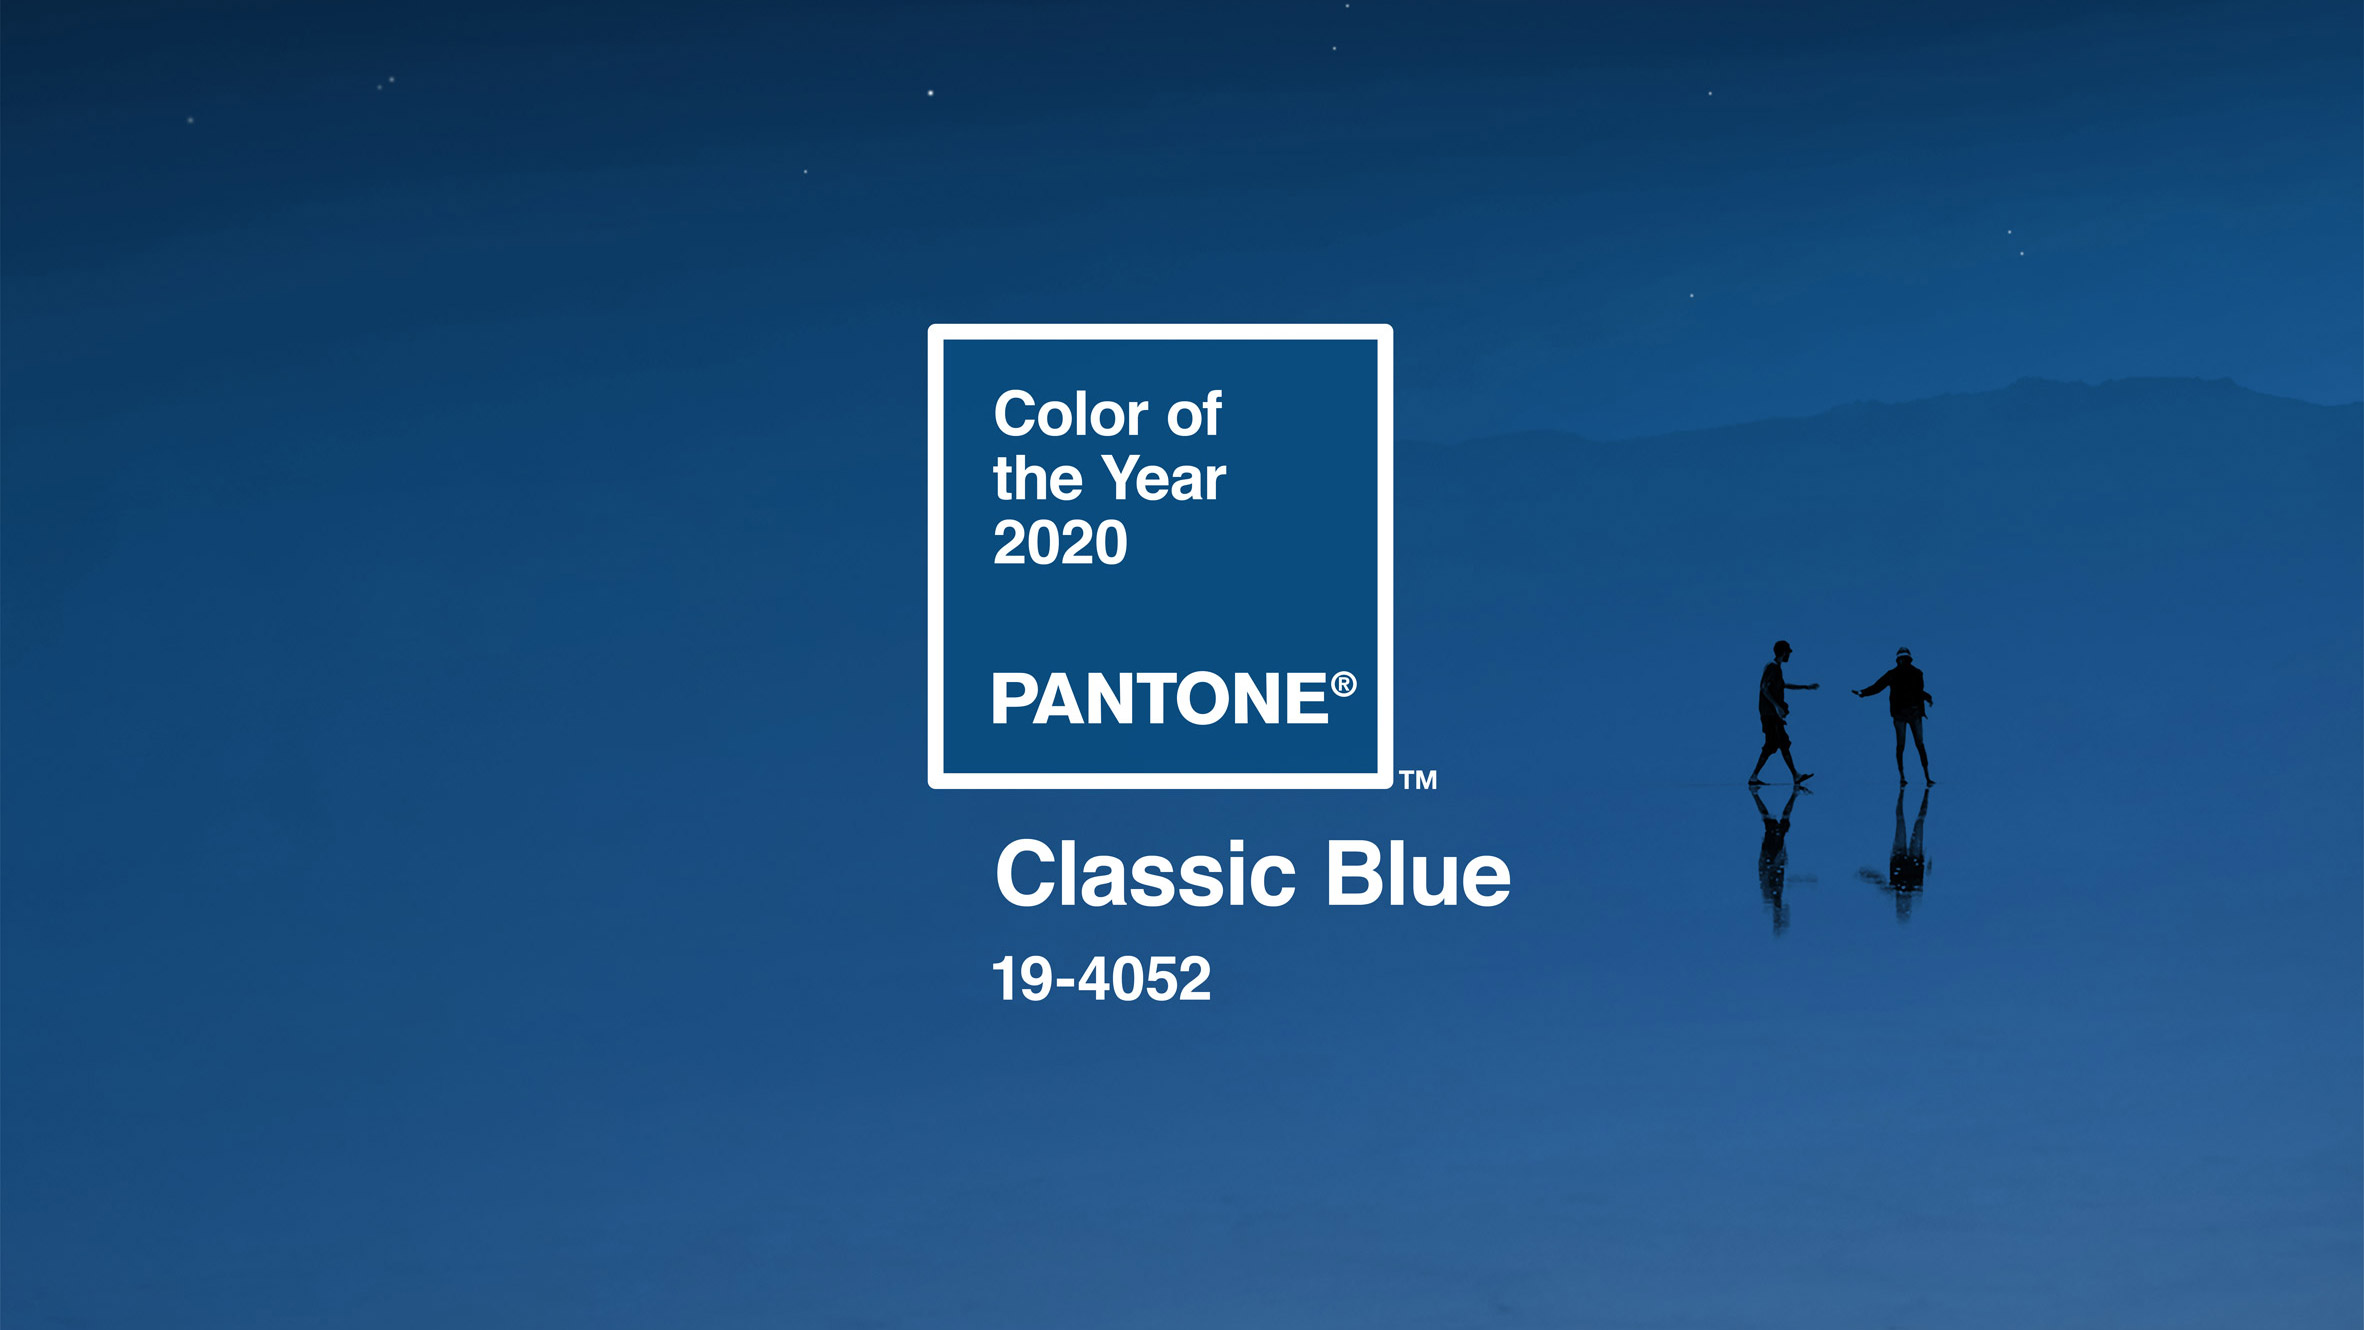 Adding Pantone's Classic Blue to the home